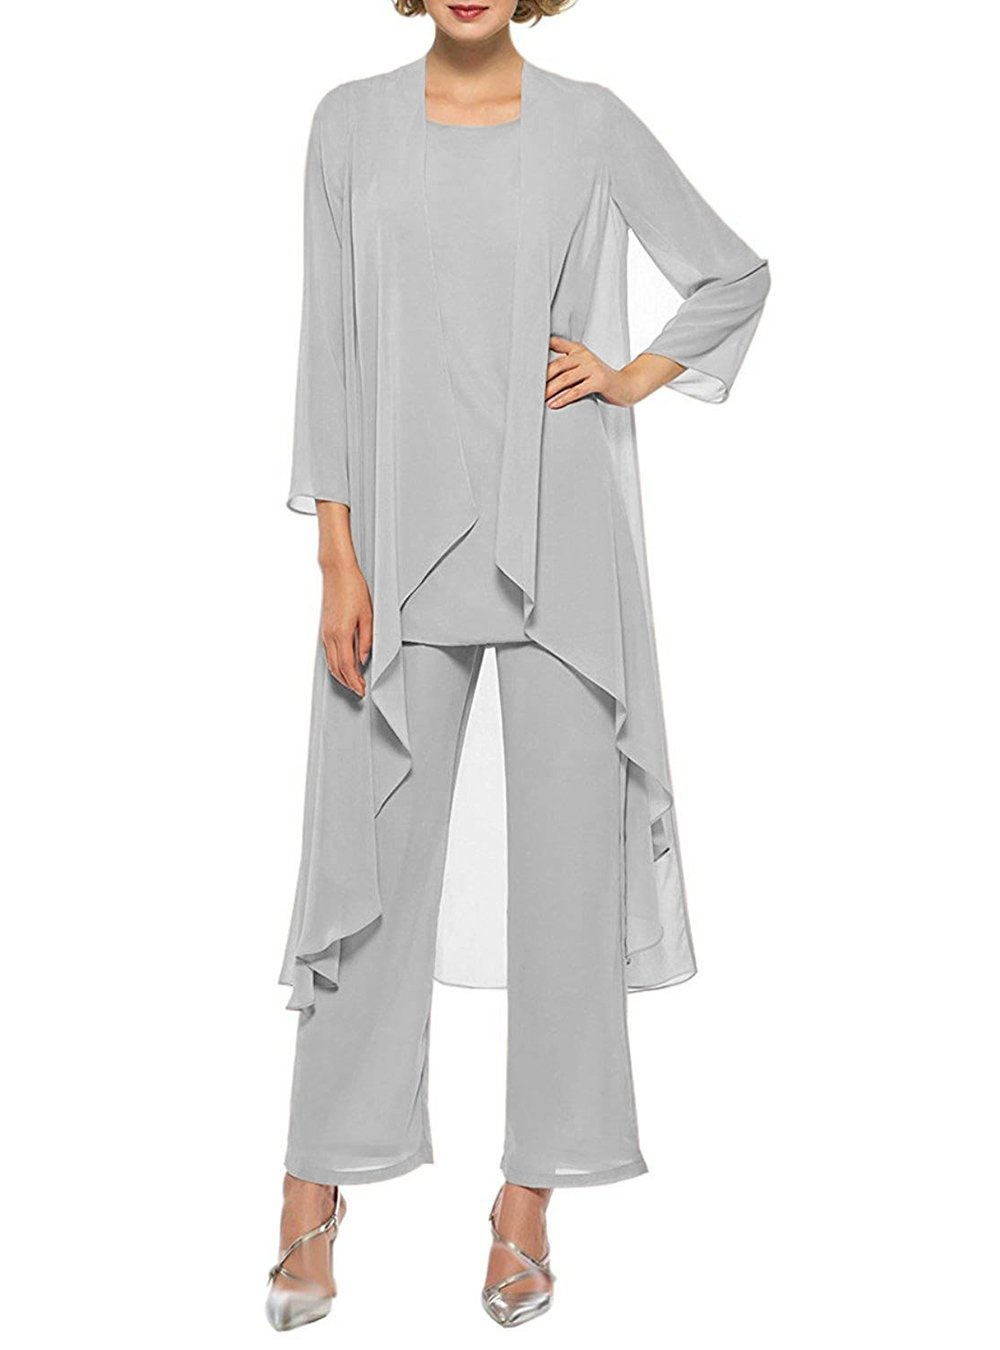 HIDRESS Women's Three Pieces Mother of The Bride Dresses Chiffon Lace Pant Suits with Long Jacket BQ133 Size 22 Silver